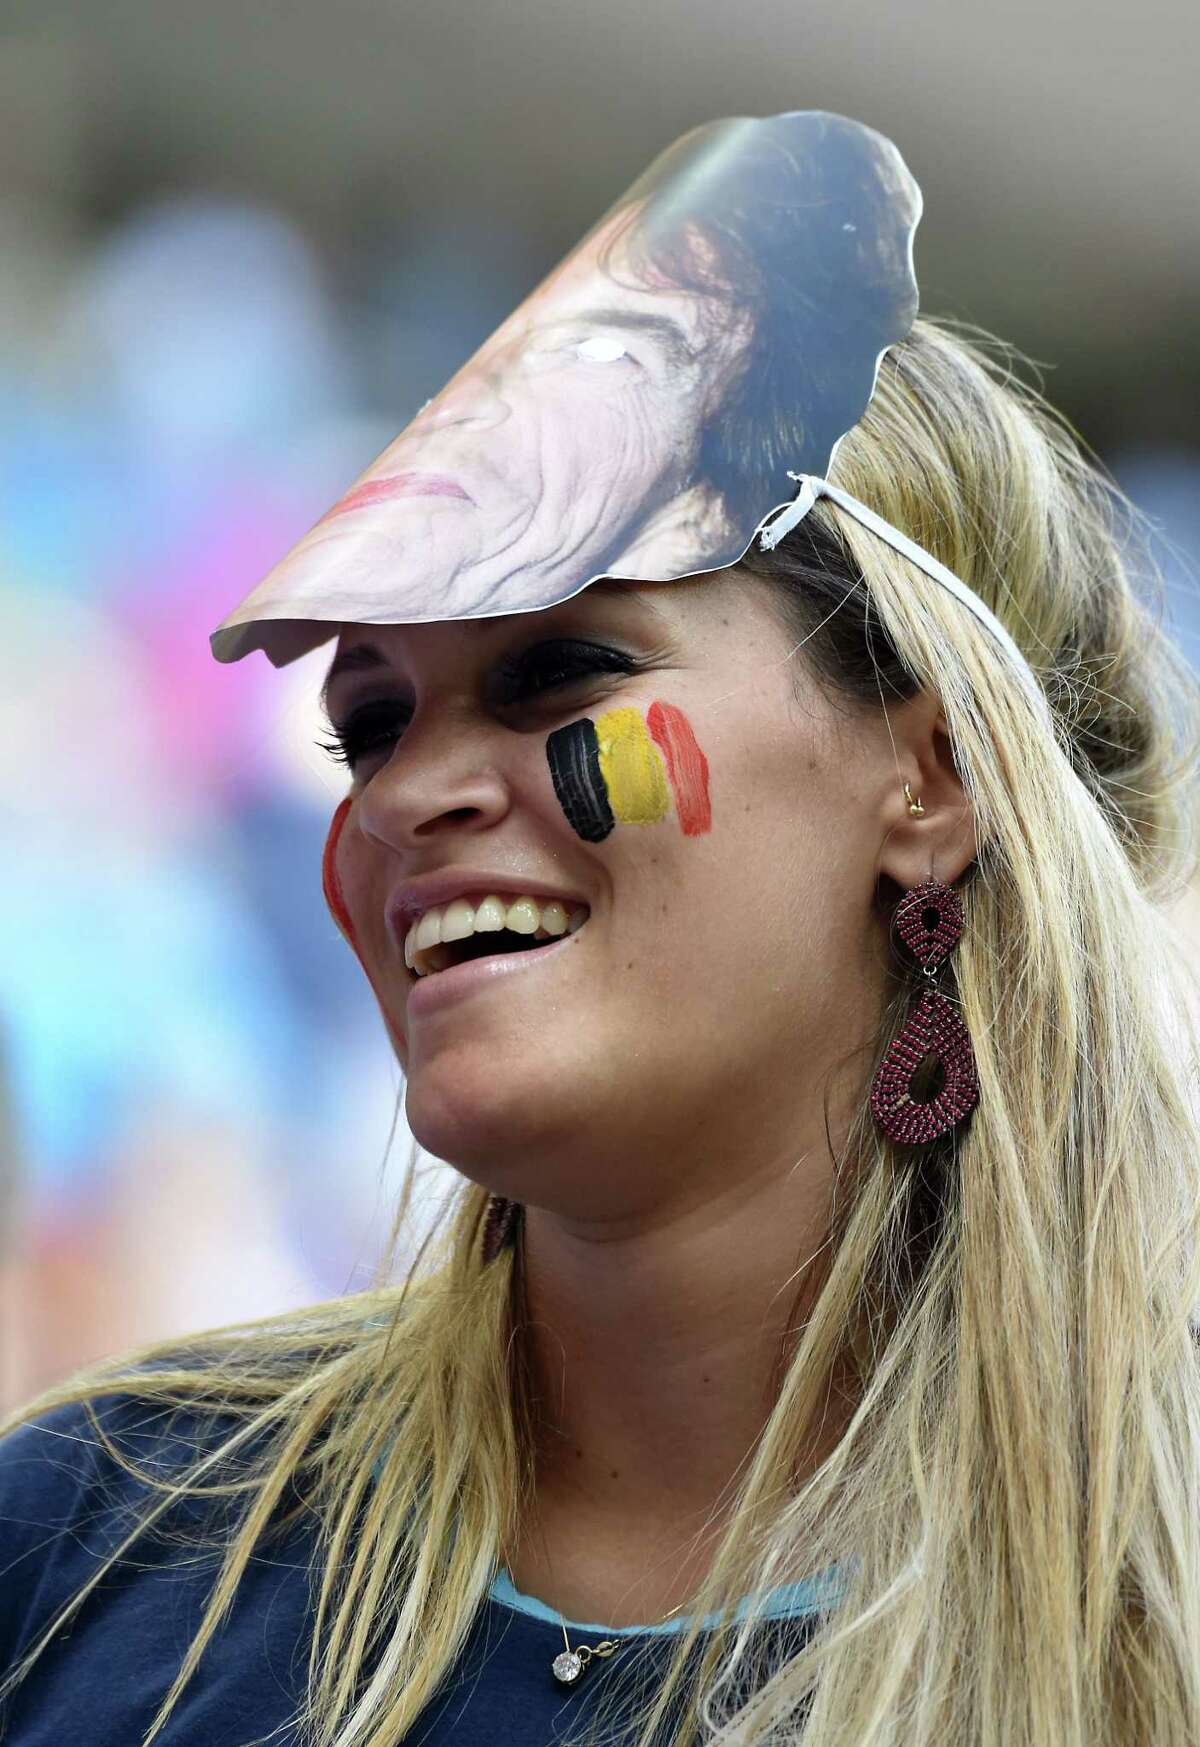 A fan of Belgium smiles prior to a quarter-final football match between Argentina and Belgium at the Mane Garrincha National Stadium in Brasilia during the 2014 FIFA World Cup on July 5, 2014. AFP PHOTO / FRANCOIS XAVIER MARITFRANCOIS XAVIER MARIT/AFP/Getty Images